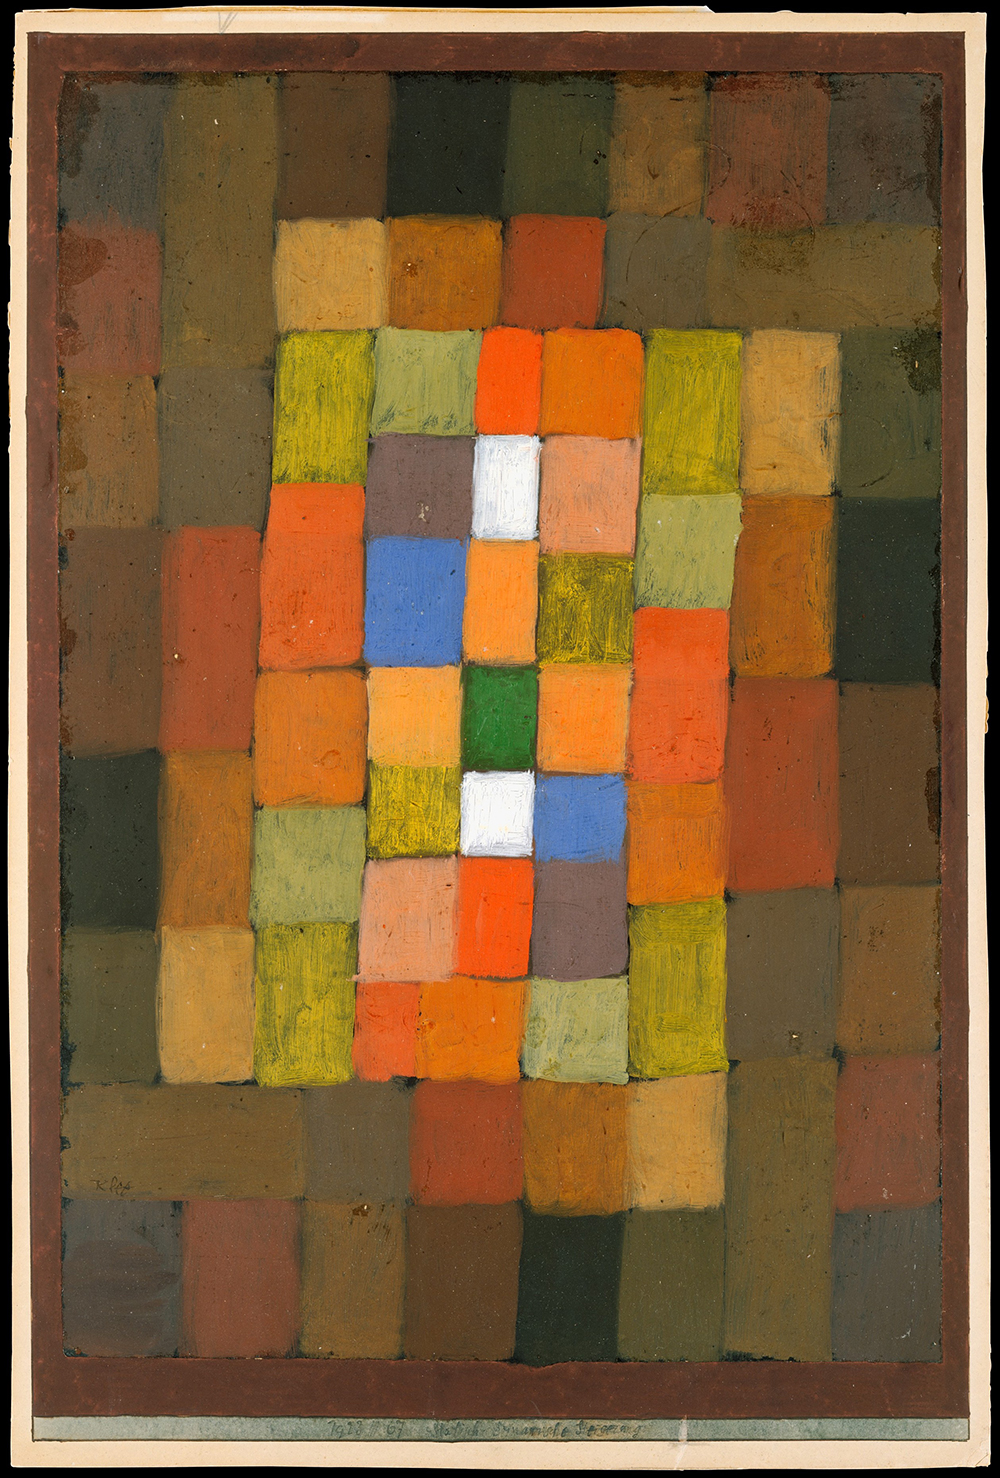 """Static-Dynamic Gradation,"" by Paul Klee, 1923. The Berggruen Klee Collection, 1987, The Metropolitan Museum of Art."